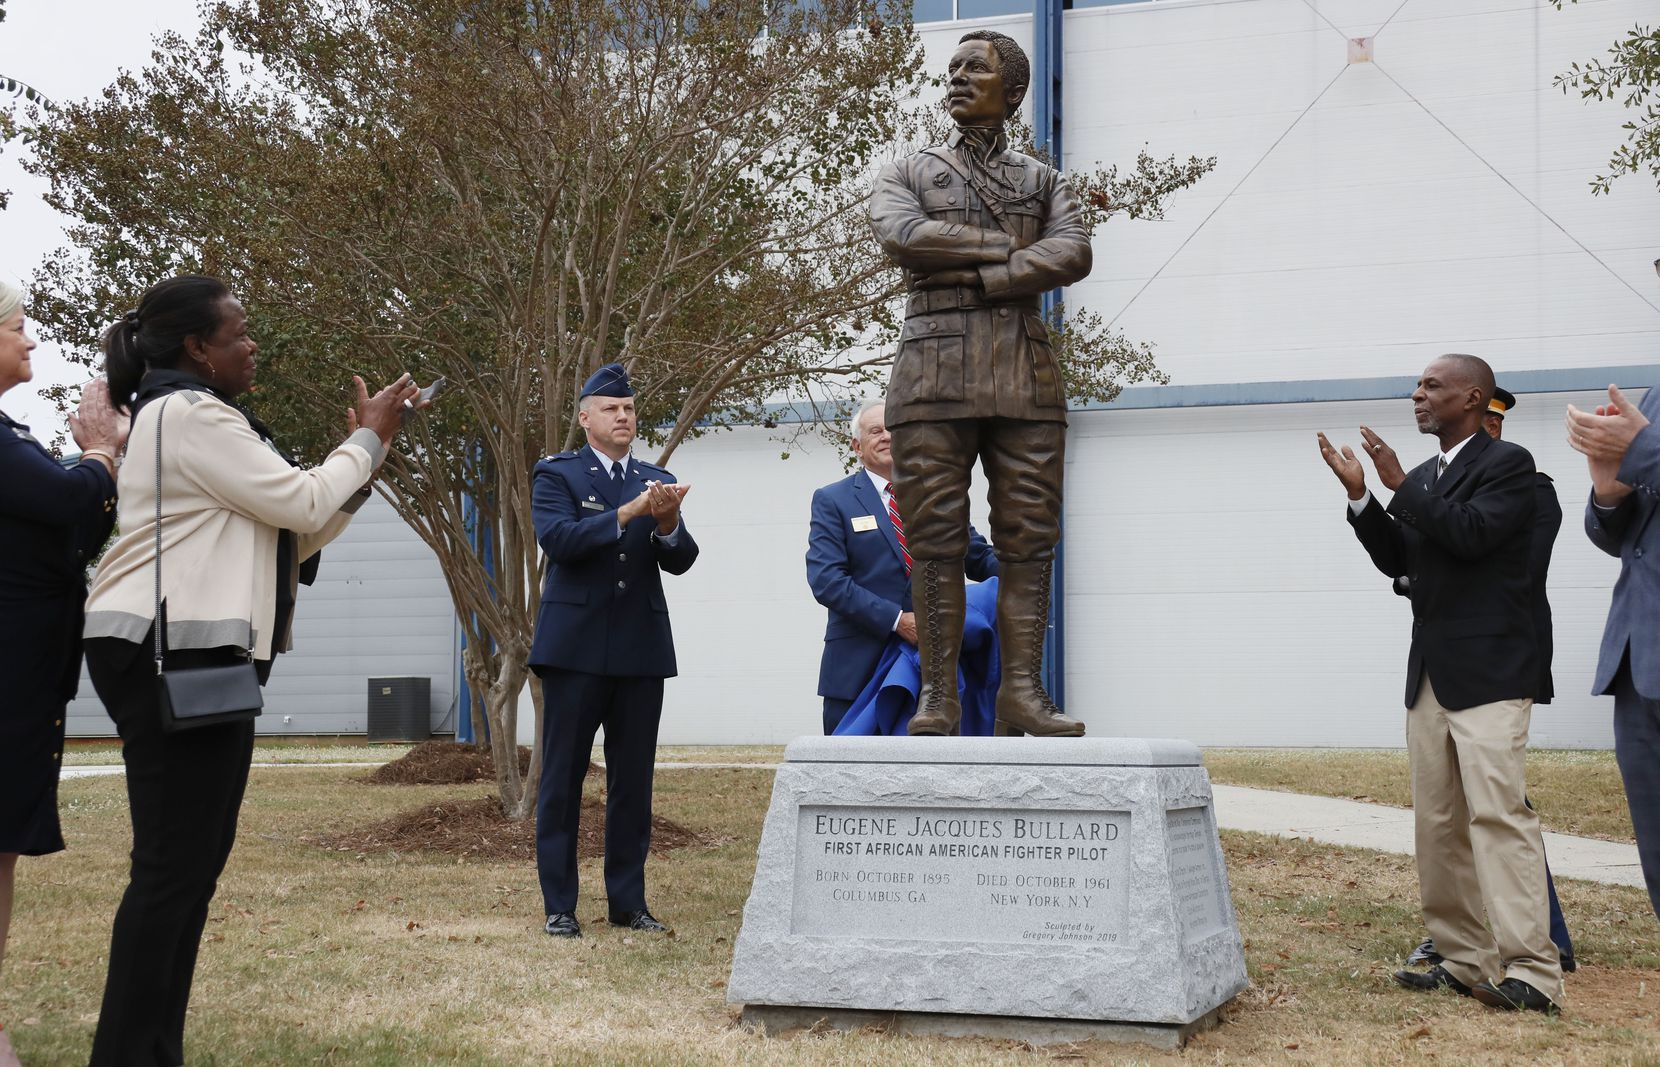 "Harriett Bullard White (far left) and William Bullard (far right)  join in applause  after the statue of Eugene Bullard was unveiled on Wednesday, Oct. 9, 2019, at the Museum of Aviation near Robins Air Force Base in Georgia.   Awarded France's Croix de Guerre for his heroism at the Battle of Verdun, Bullard joined France's air service, becoming the world's first African American fighter pilot and earning the nickname ""The Black Swallow of Death."" To honor him on his birthday in the state he fled more than a century ago, Georgia's WWI Centennial Commission will unveil a statue of Bullard."